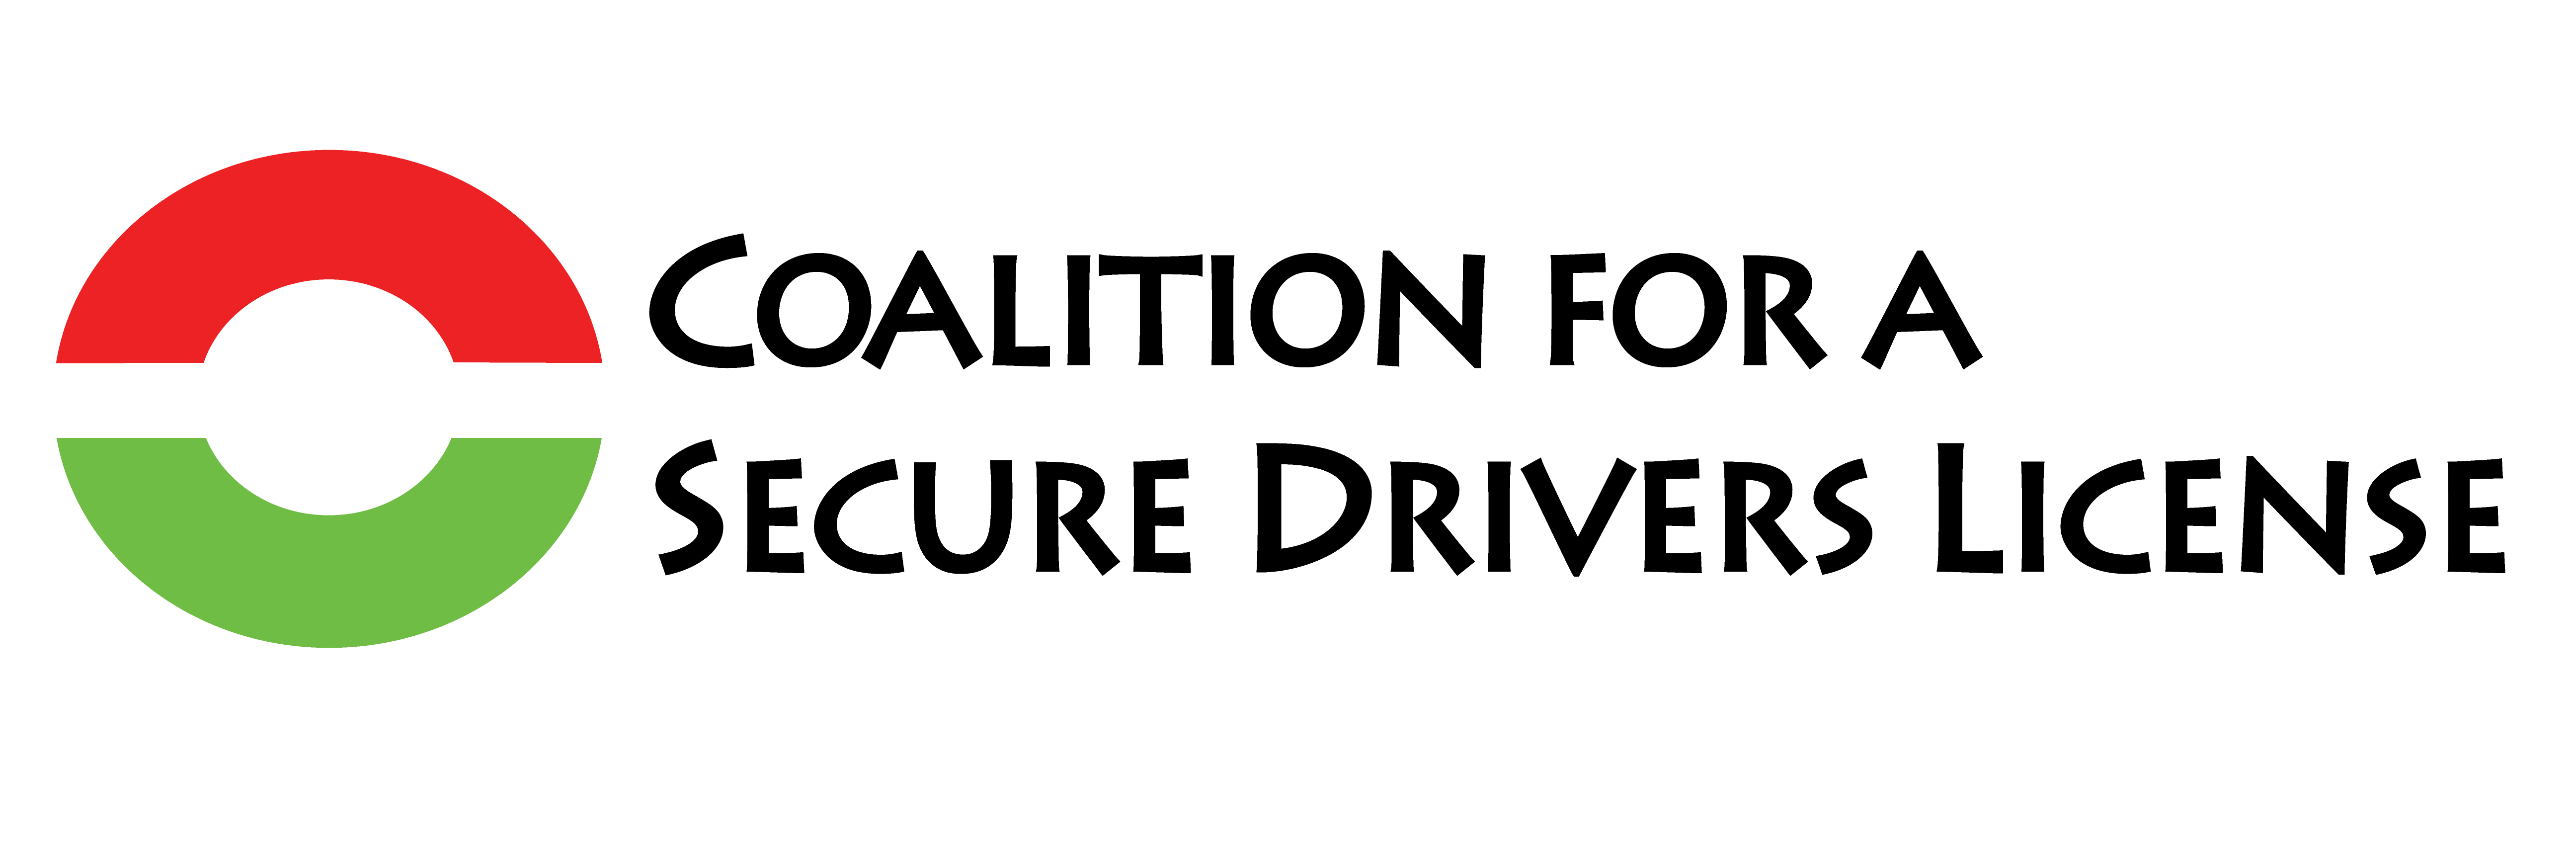 Coalition for a Secure Driver's License